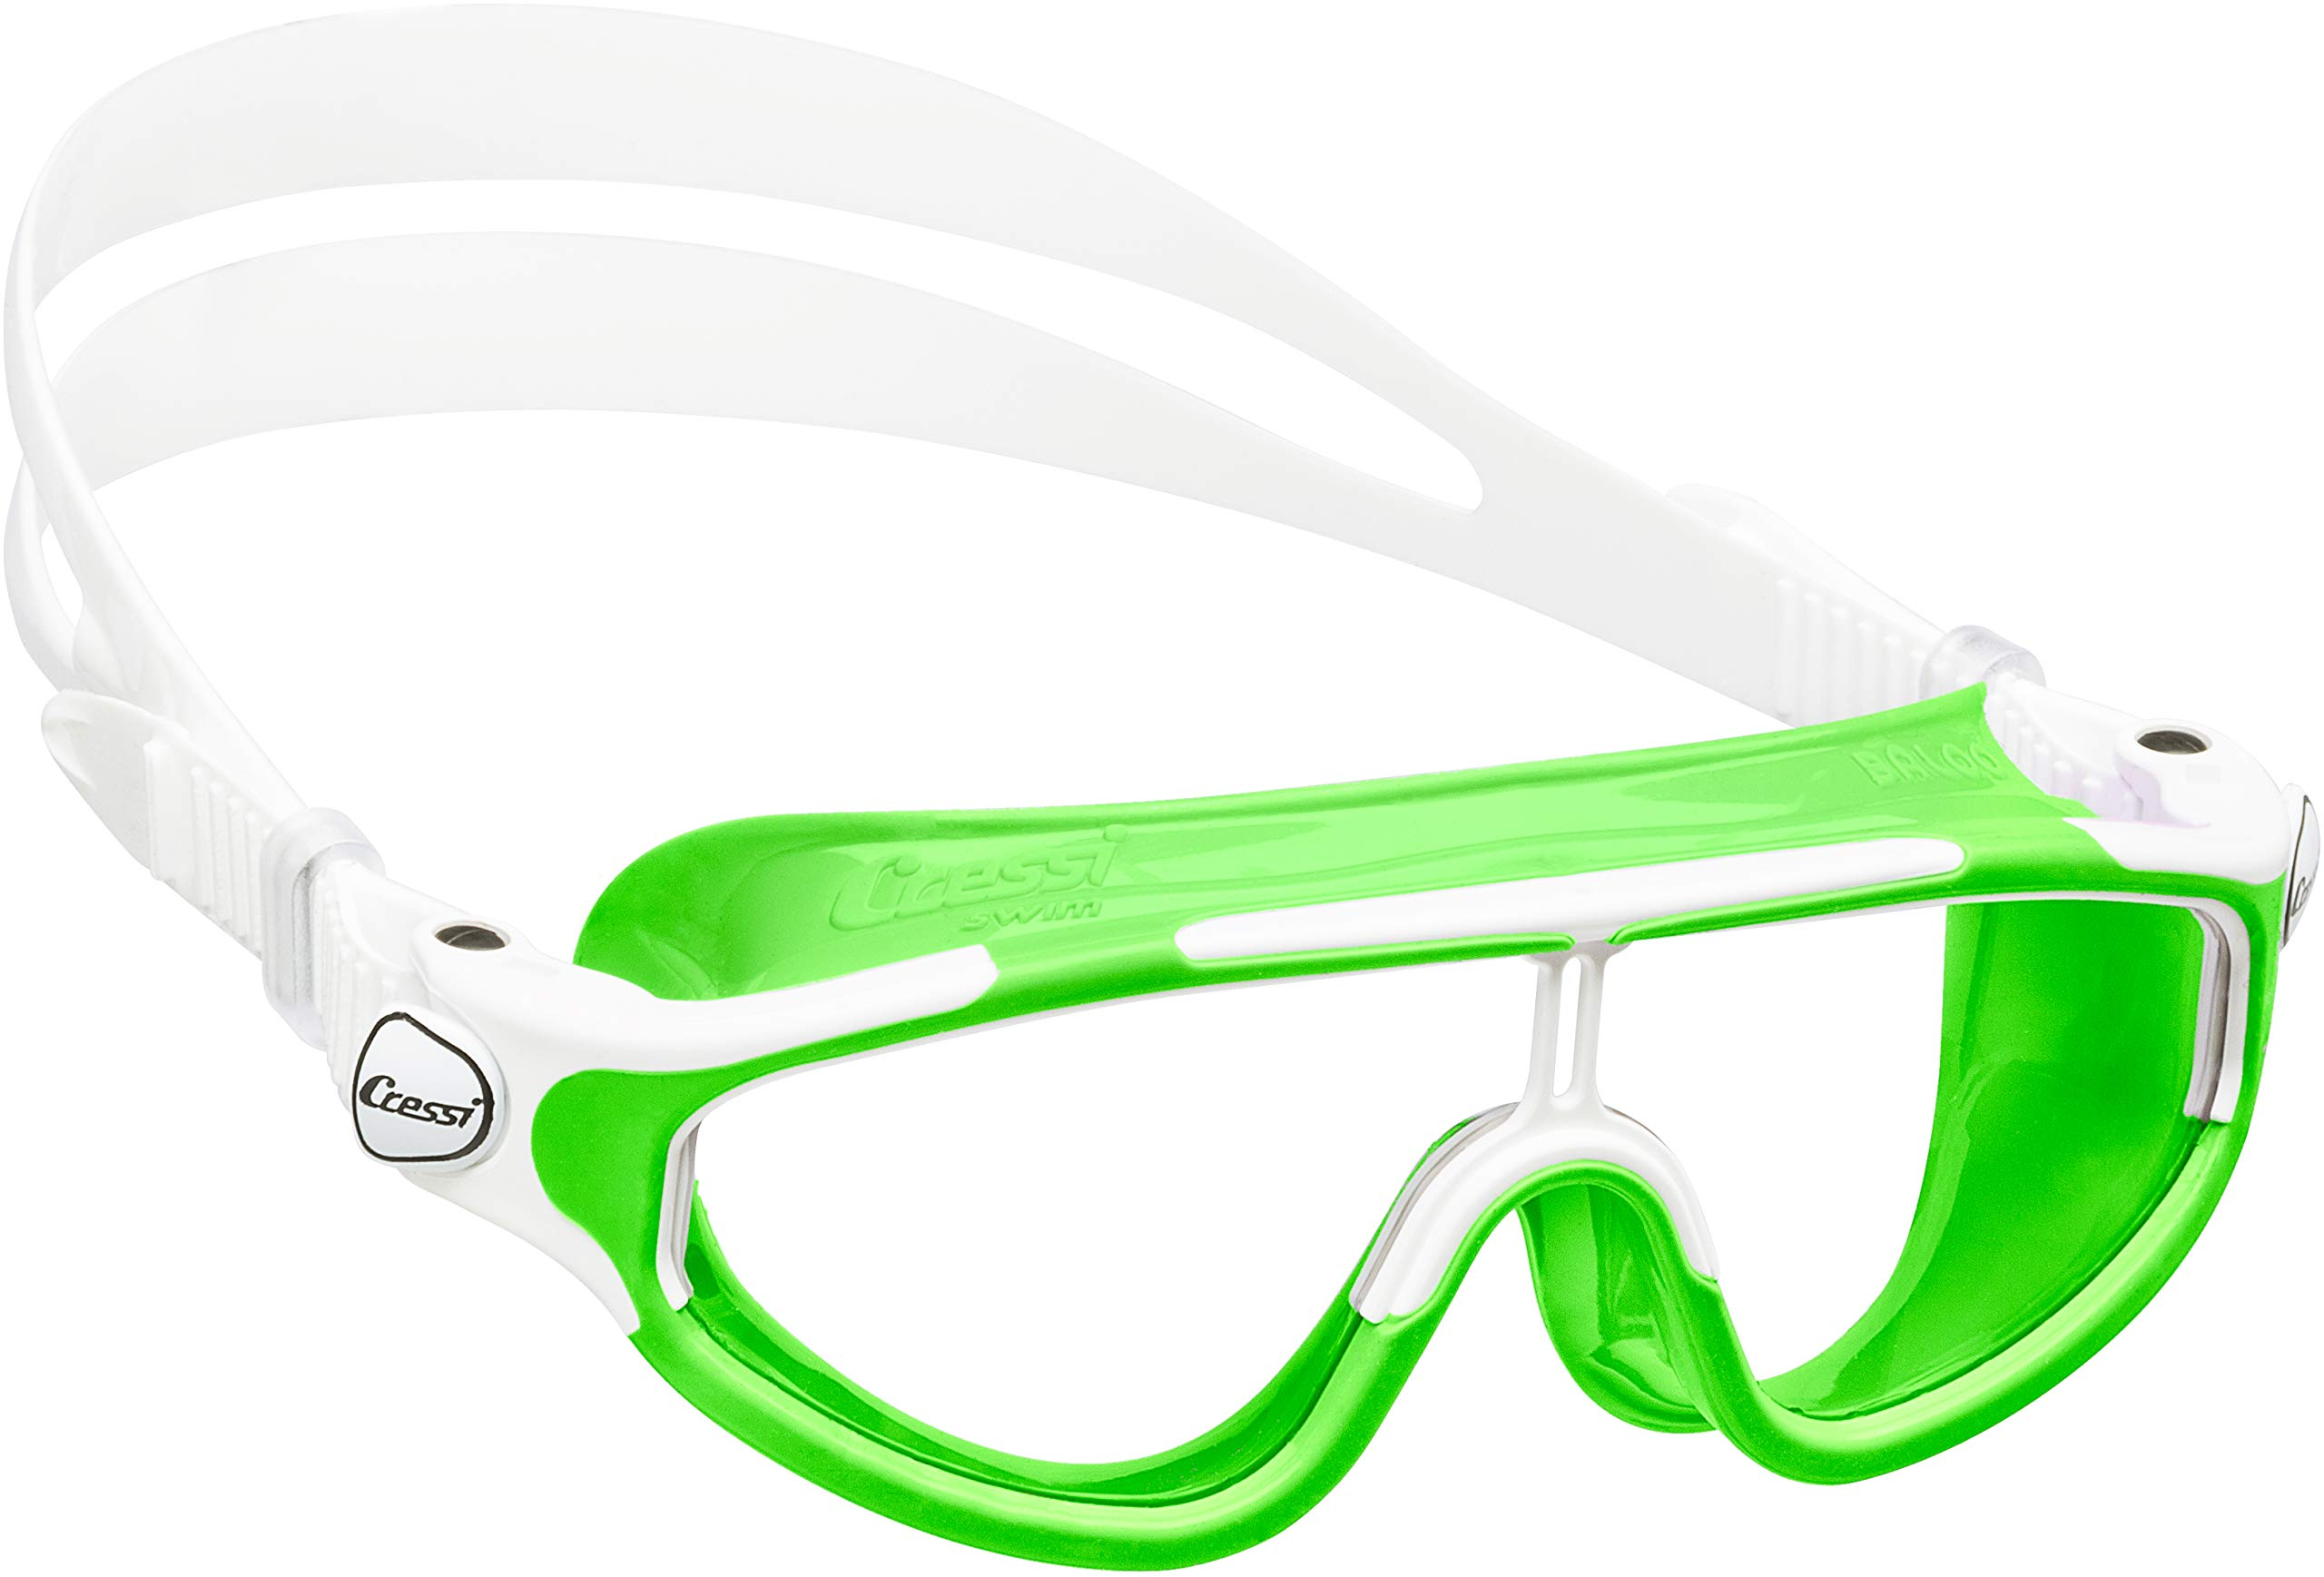 Pack of 2 No Leaking Swimming Goggles Anti-Fog UV Protection Crystal Clear Wide Vision Swim Glasses with Nose Clips Ear Plugs for Children Early Teens KNGUVTH Kids Swim Goggles